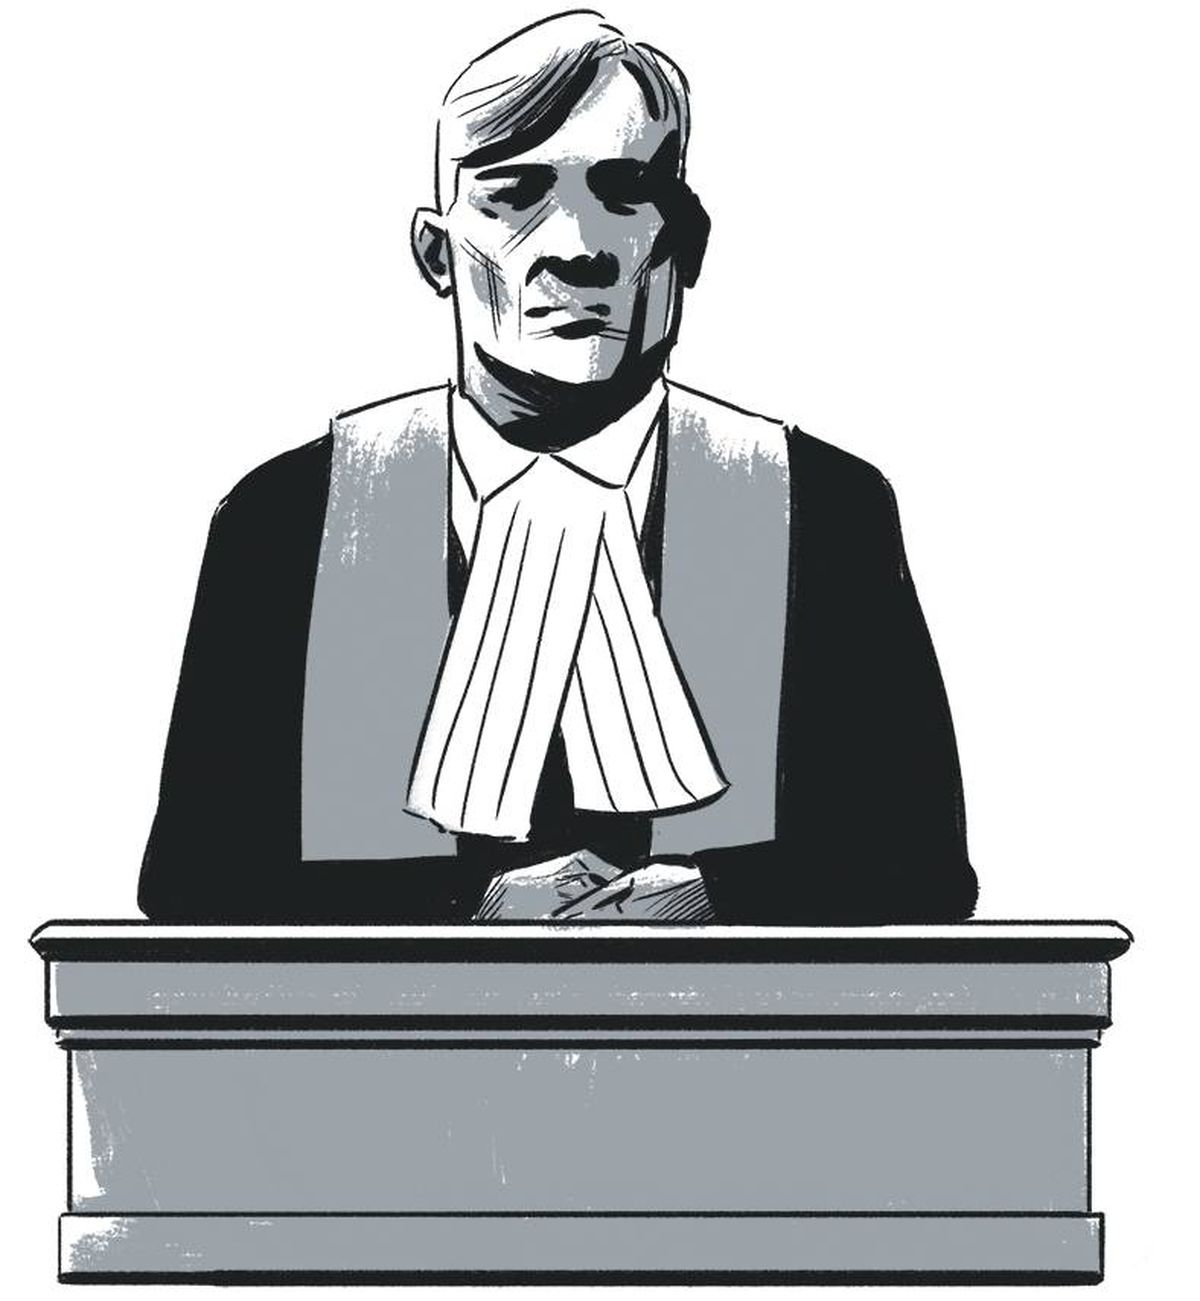 Stephen Harper's courts: How the judiciary has been remade - The